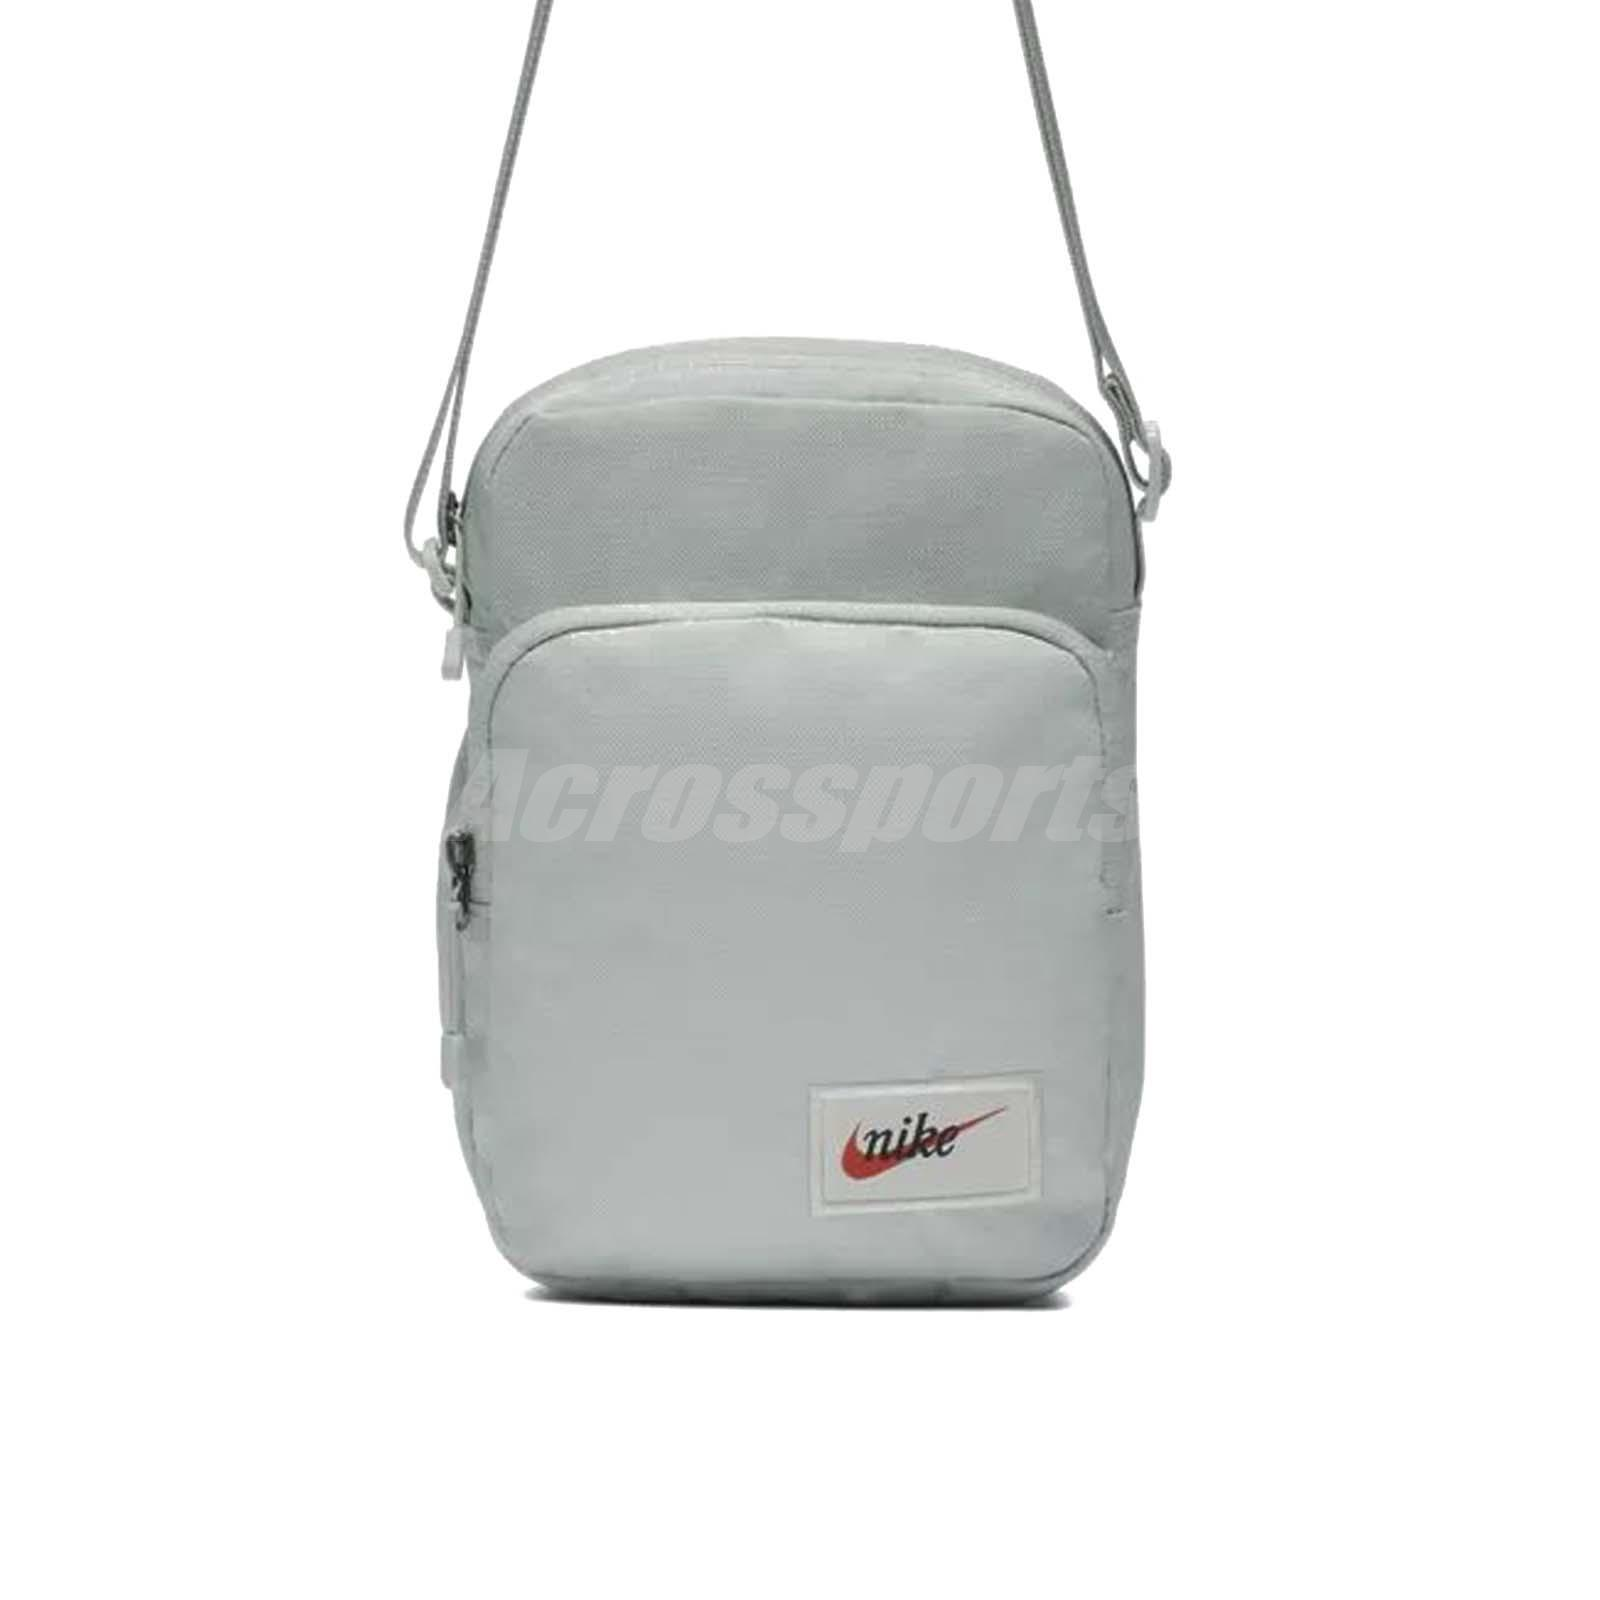 cea77cee7 Nike Core Small Items 3.0 Bag Shoulder Casual Sports Training Silver  BA5809-034